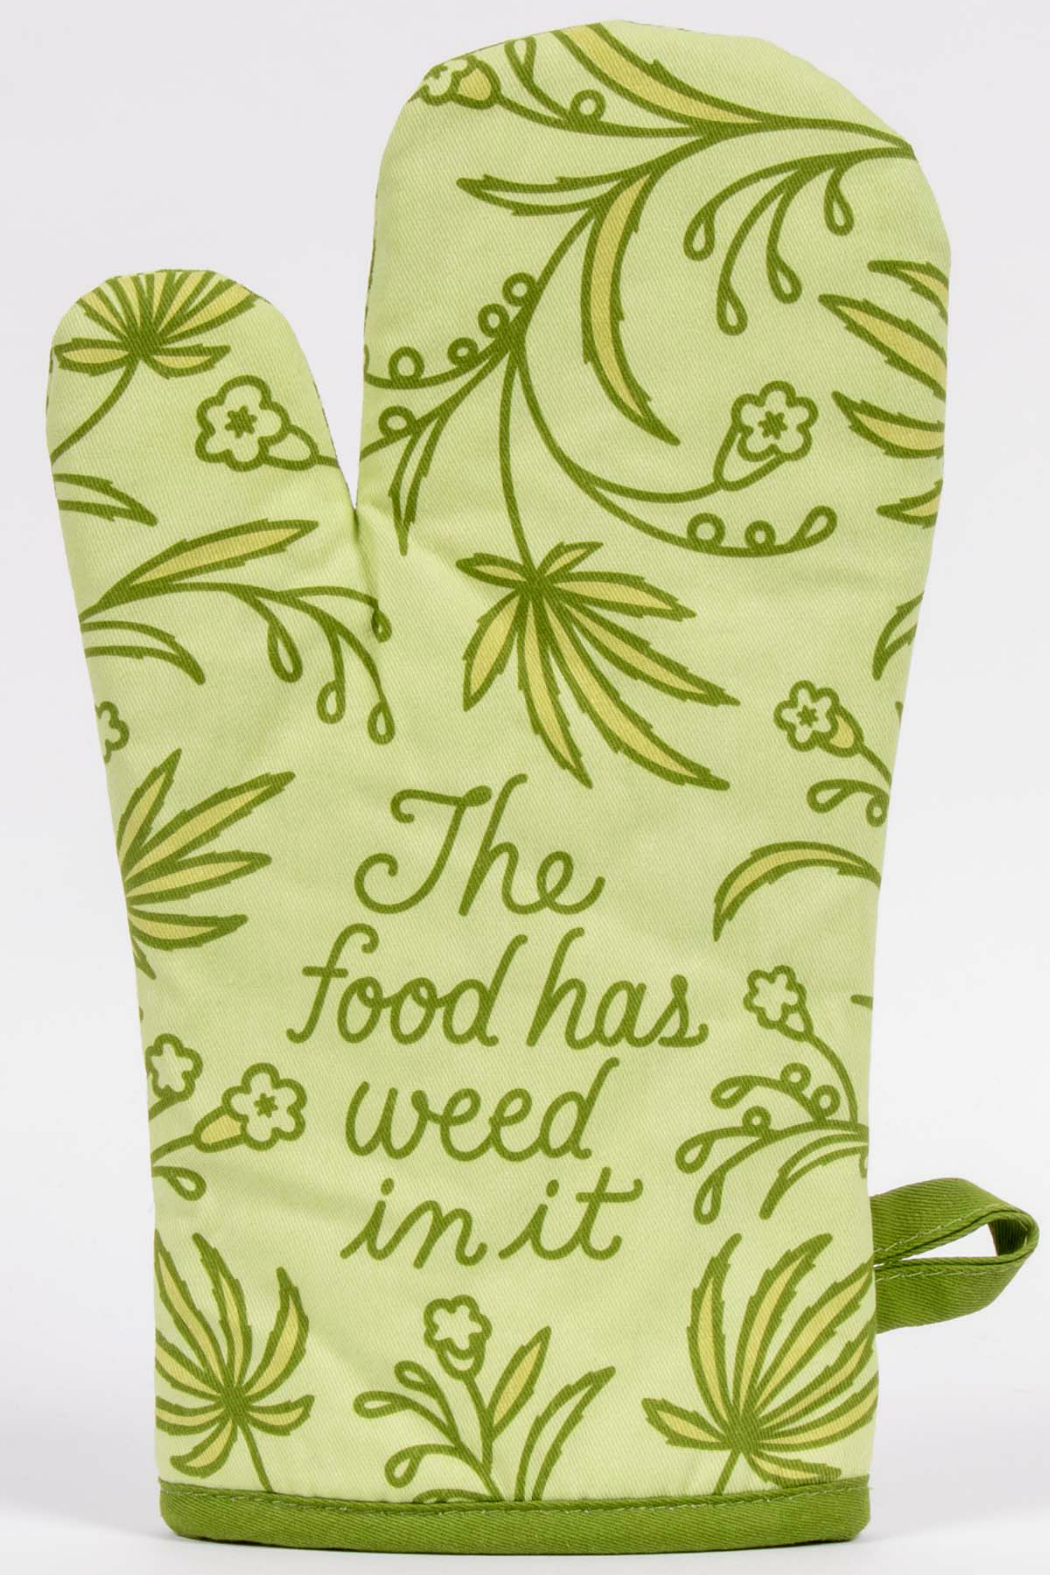 Blue Q Food has weed in it oven mitt - Main Image